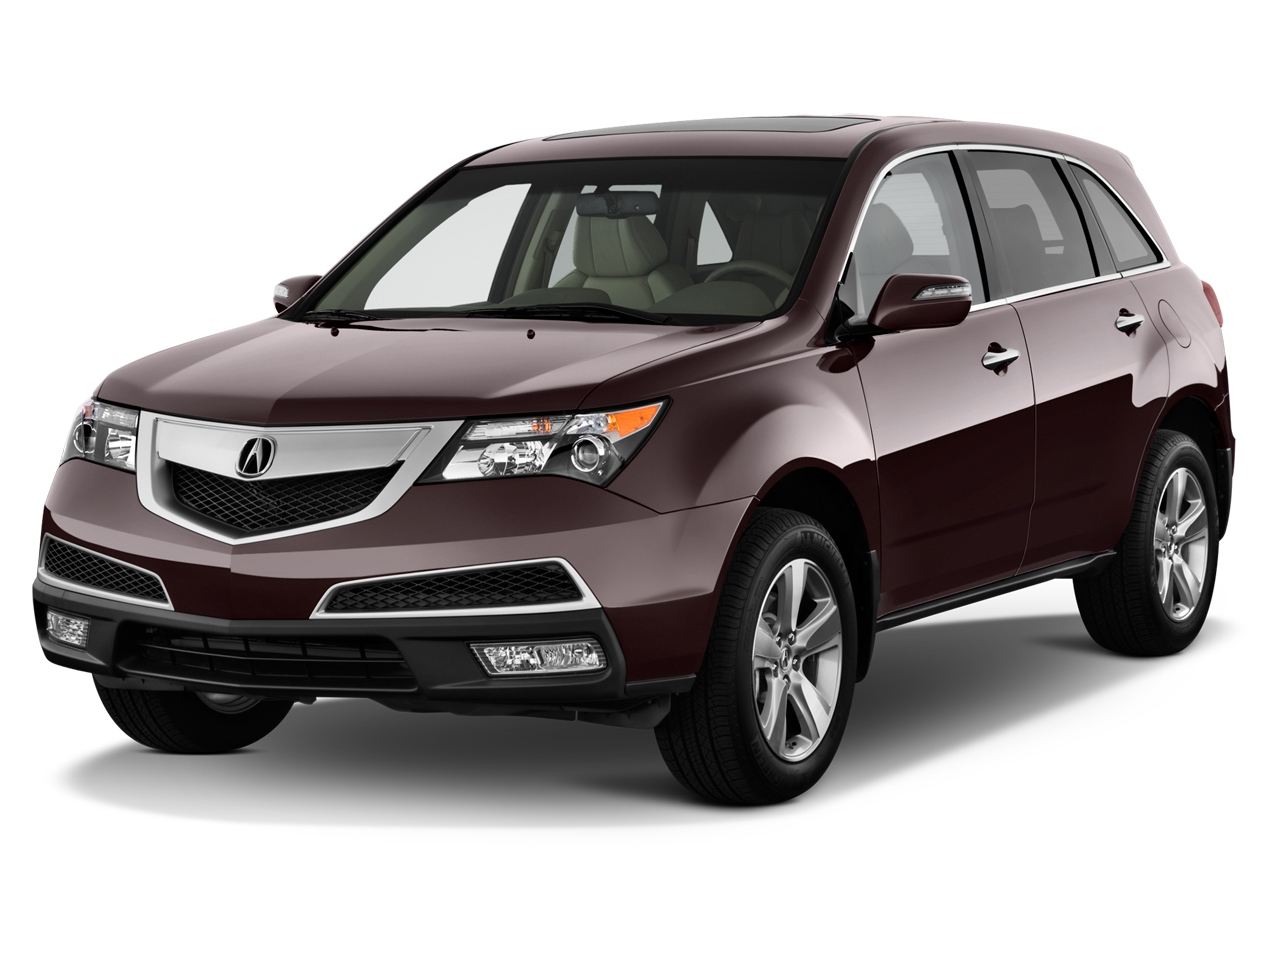 2013 acura mdx review ratings specs prices and photos. Black Bedroom Furniture Sets. Home Design Ideas